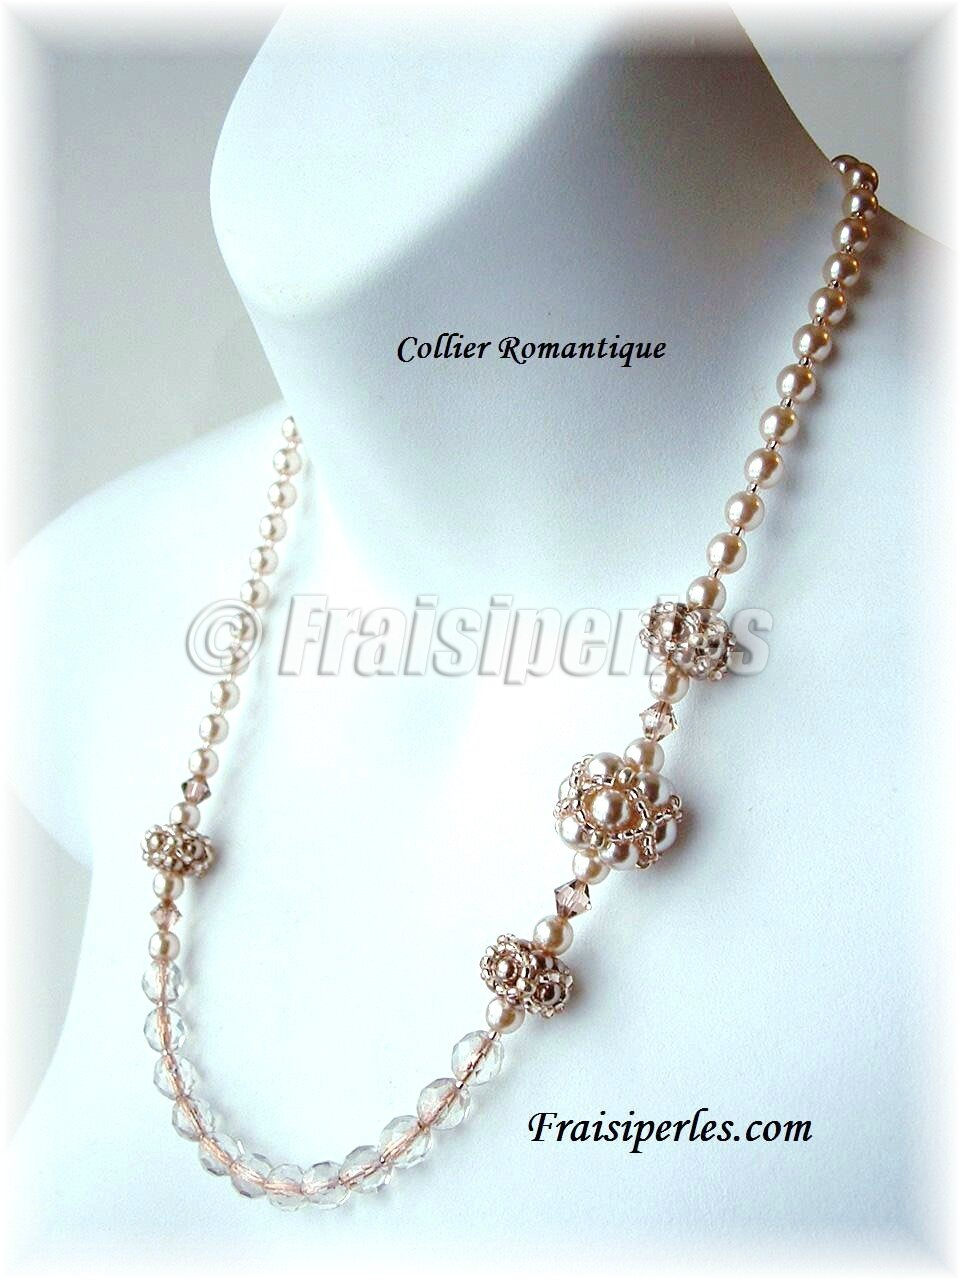 Collier Romantique copy